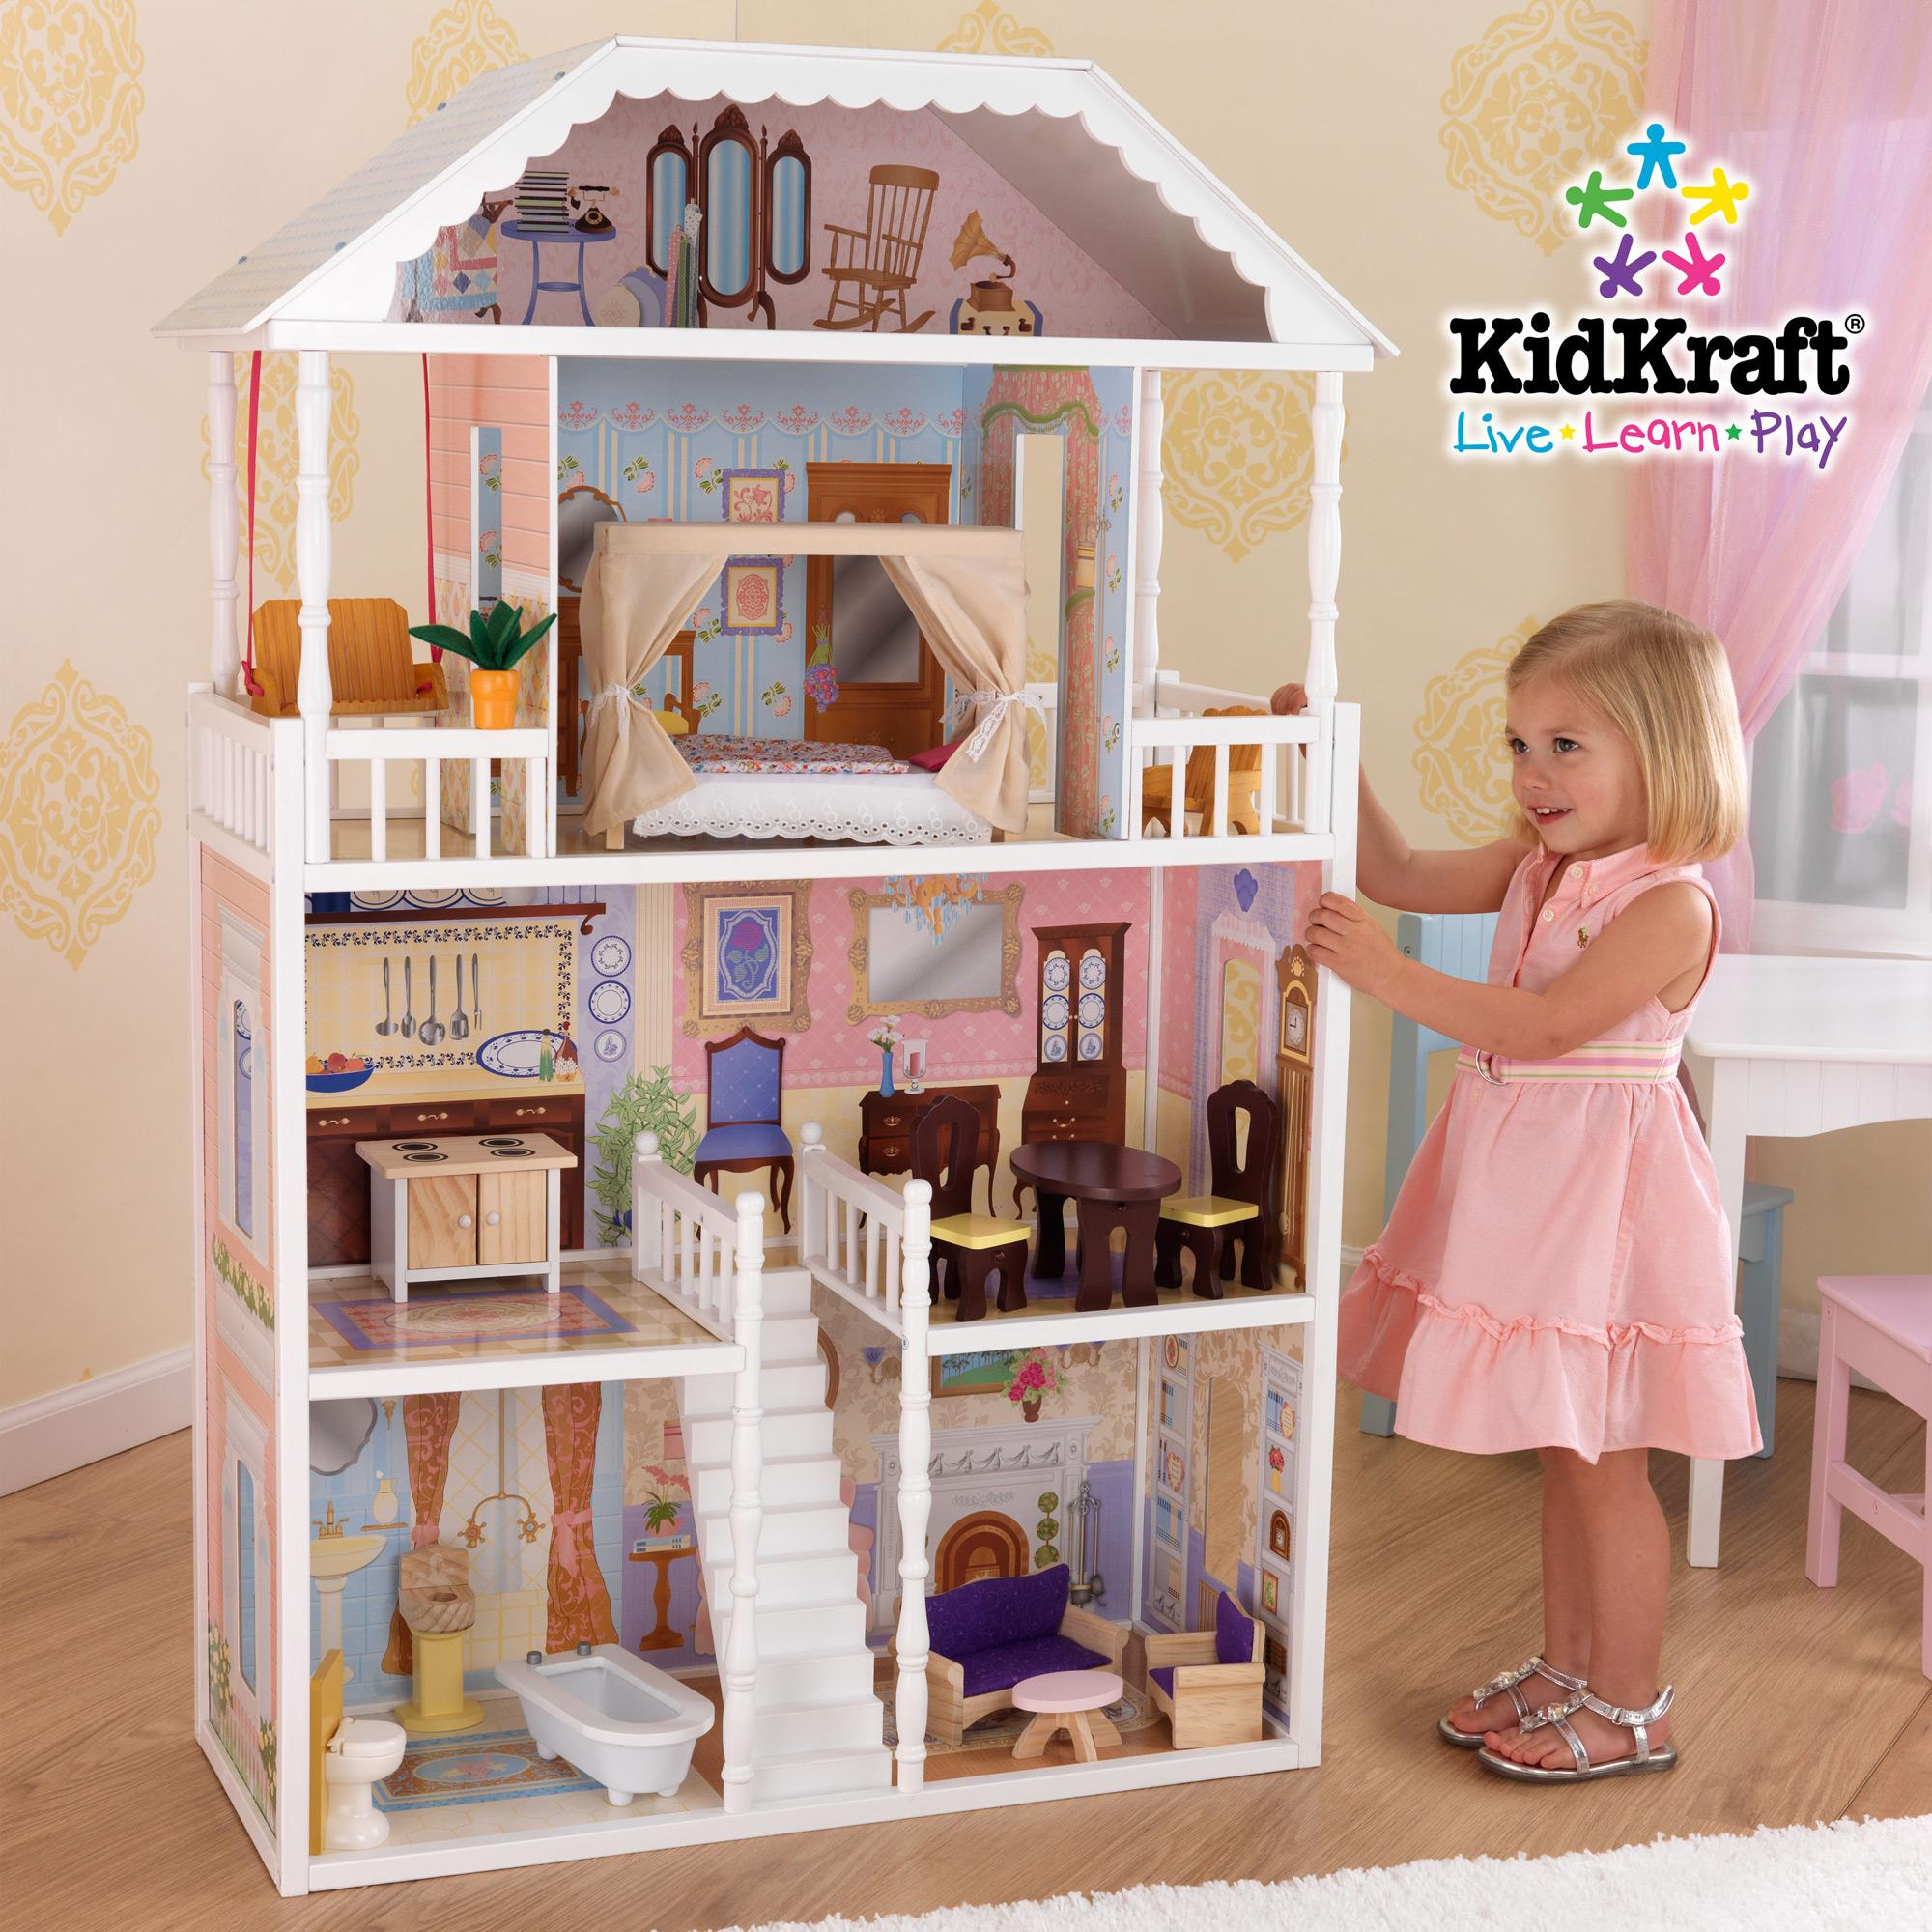 Charming Kidkraft Dollhouse In White Theme Made Of Wood With Four Tier Design On Wooden Floor Which Matched With Cream Wallpaper For Nursery Decor Ideas